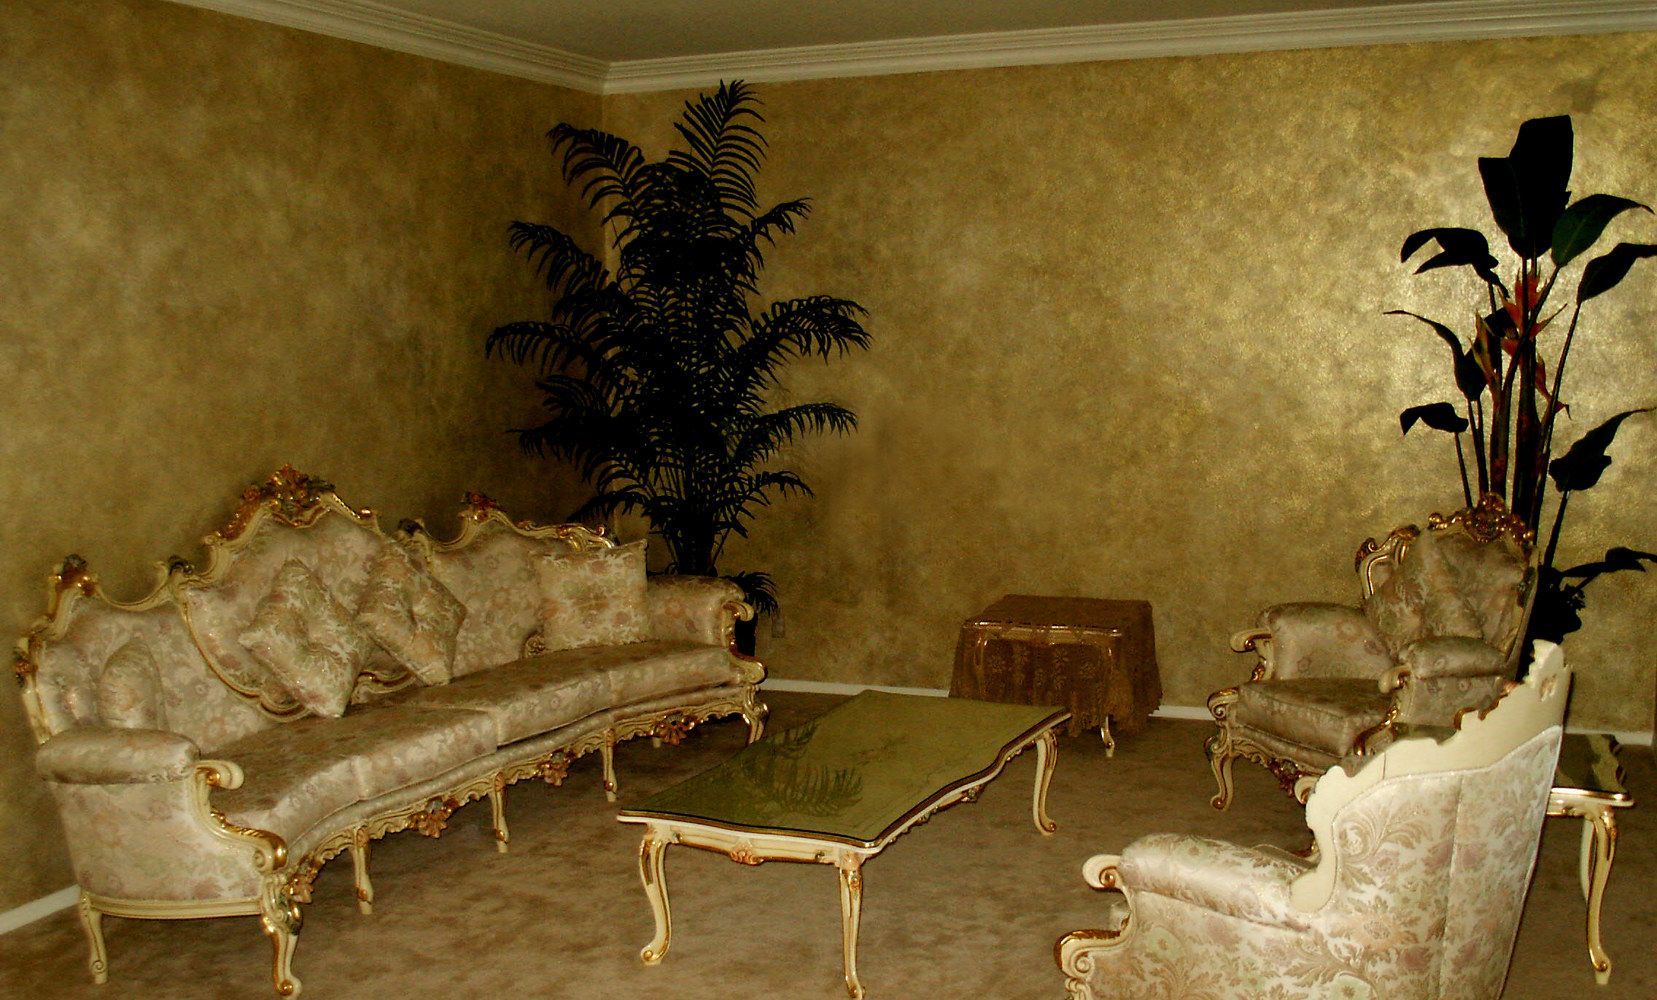 Metallic glaze Formal living room wall finish by Robert Milling